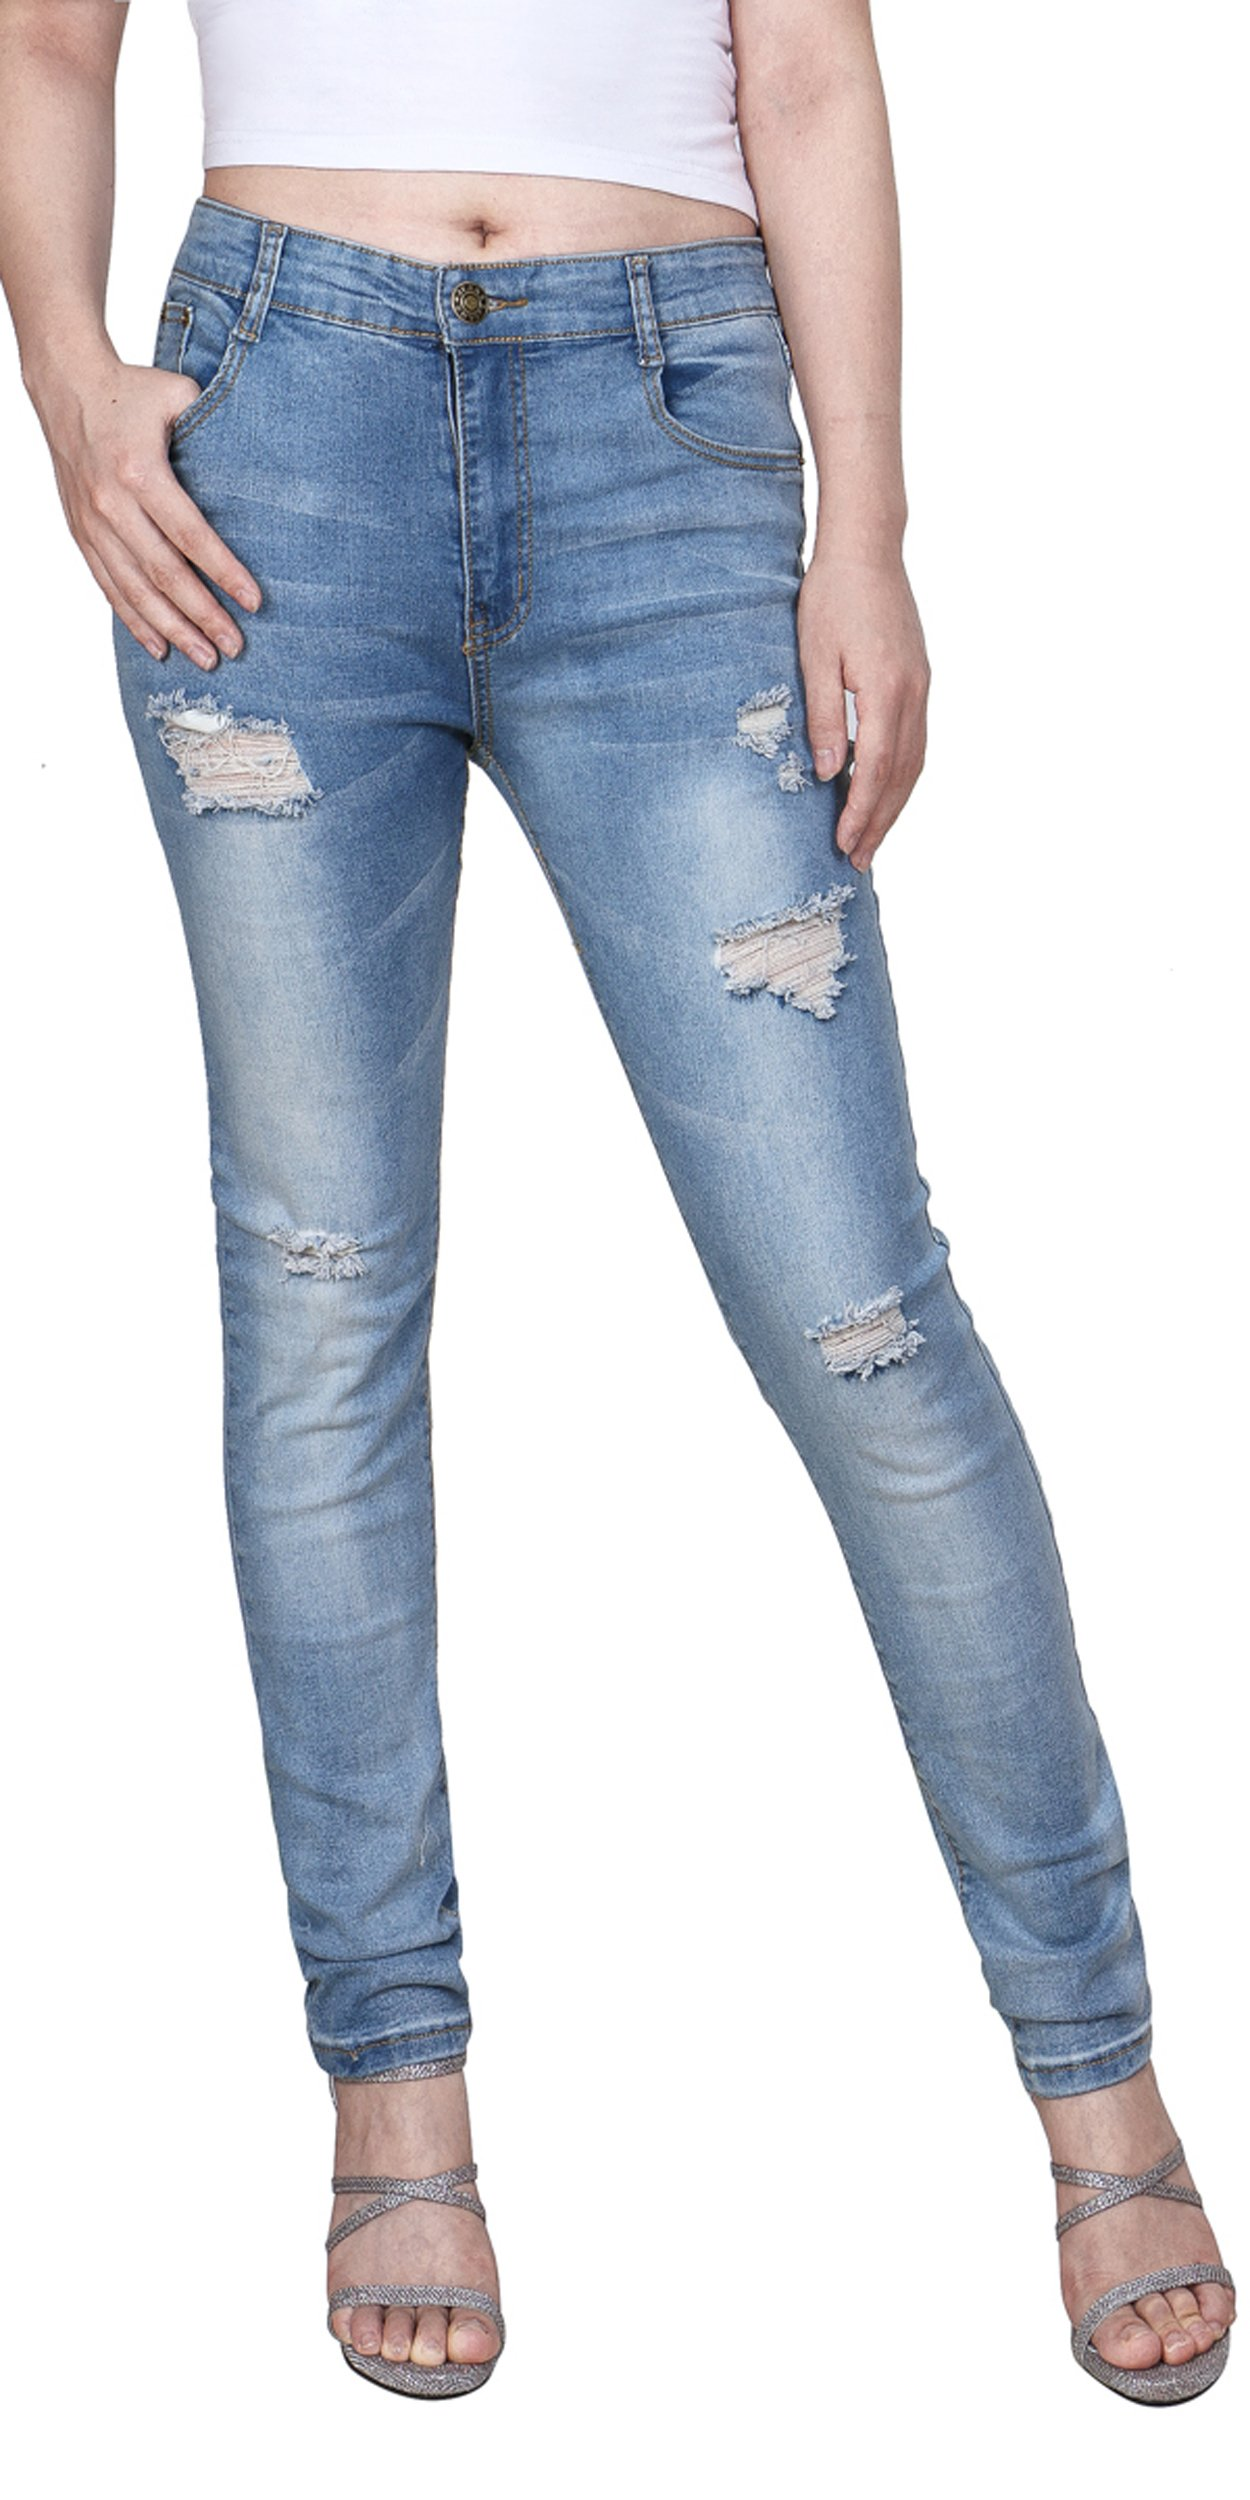 Women's Casual Ripped Holes Skinny Jeans Jeggings Straight Fit Denim Pants (US 12, Blue 8)